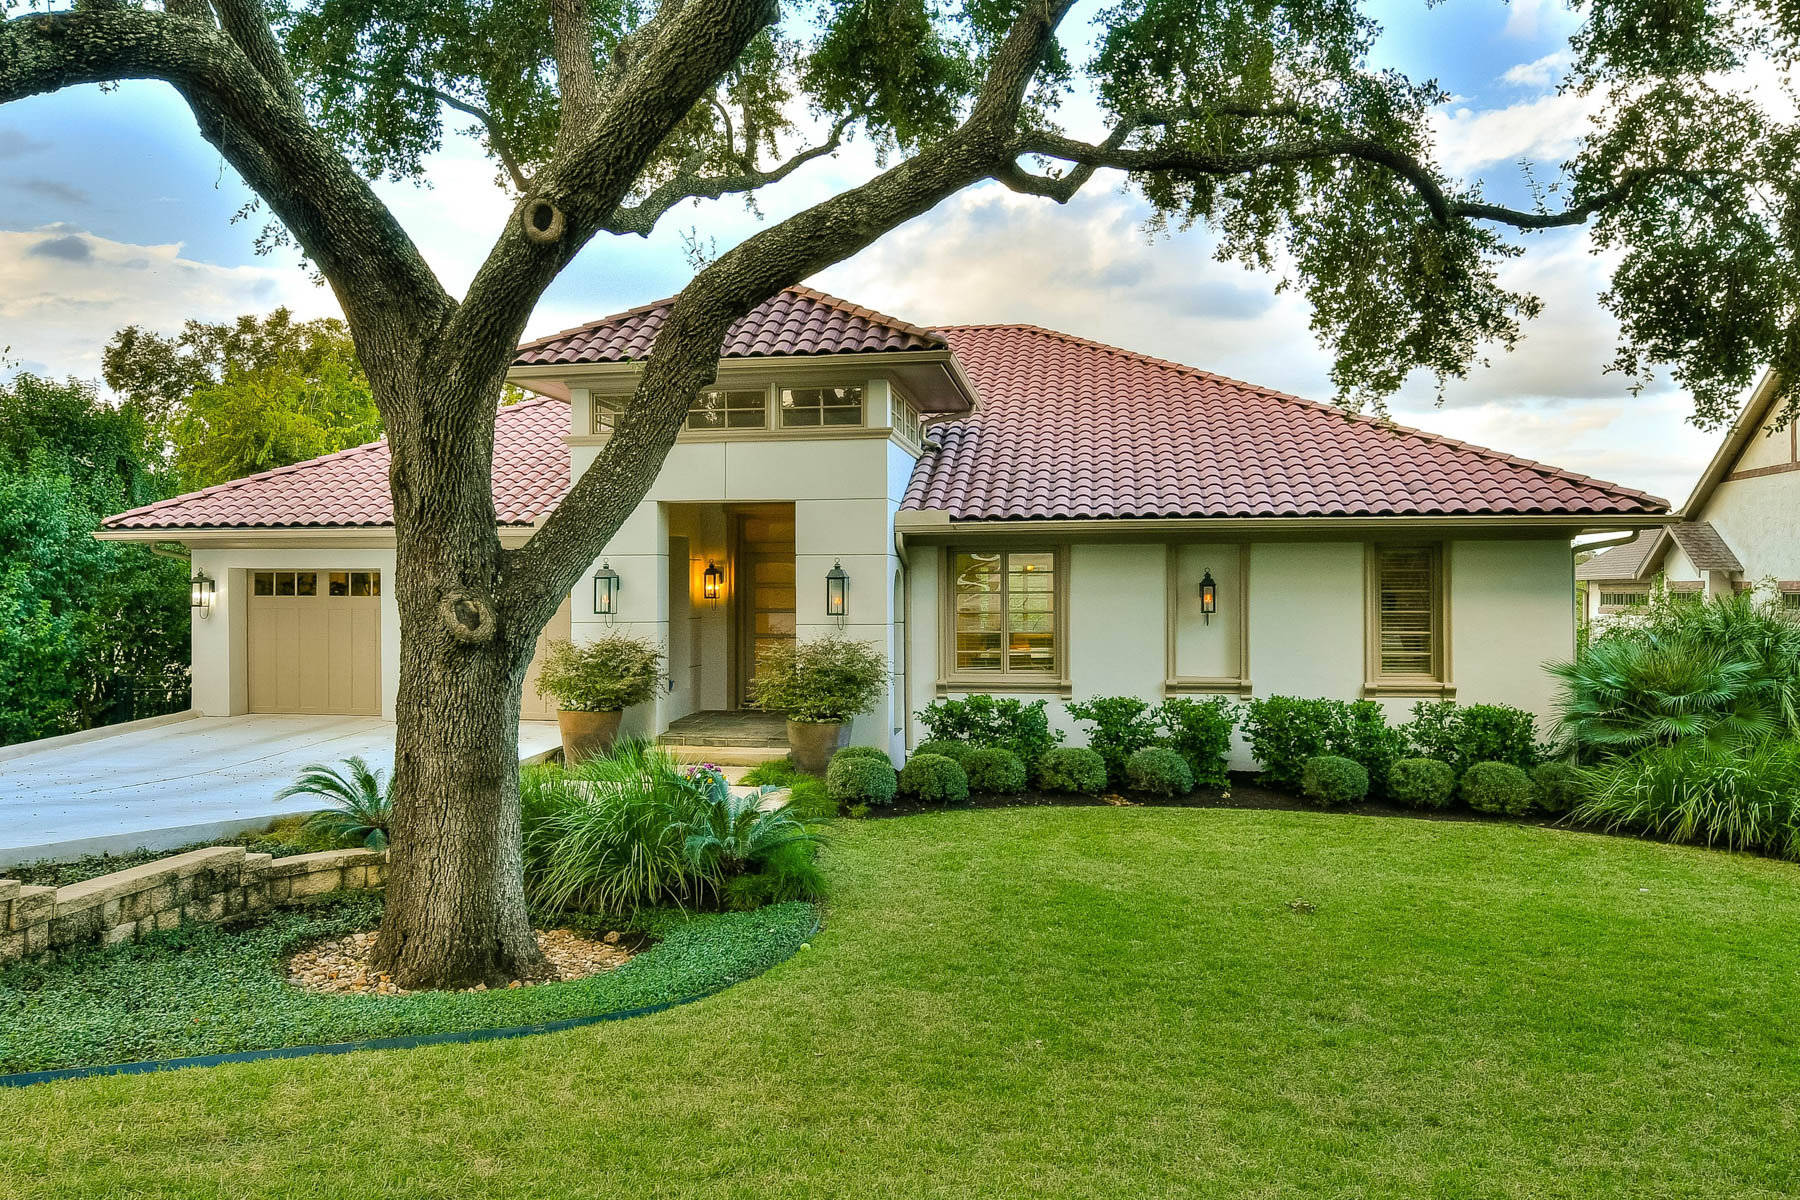 Additional photo for property listing at Meticulously Cared for Home in Terrell Hills 723 Elizabeth Rd San Antonio, Texas 78209 Estados Unidos